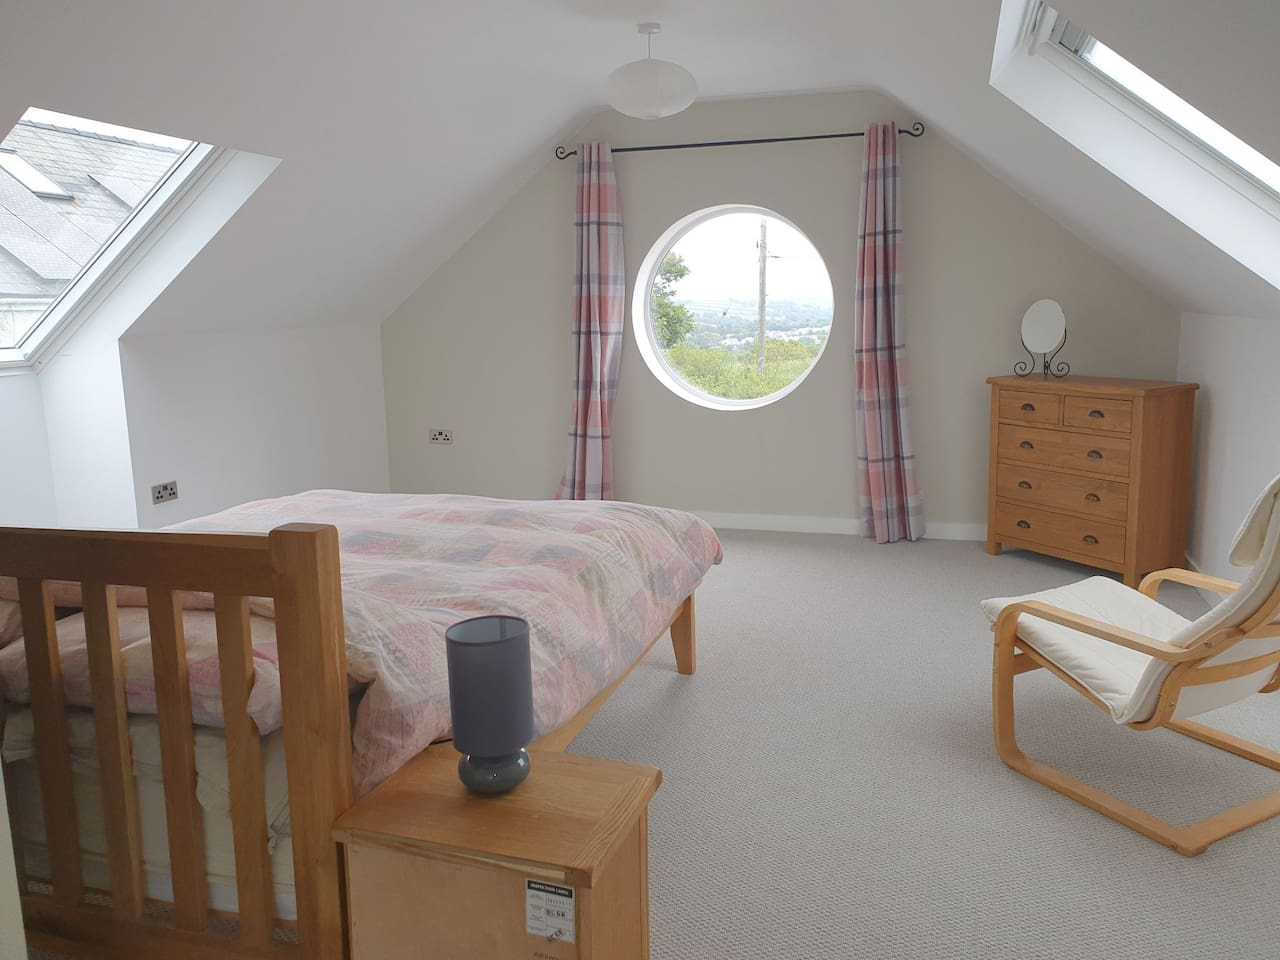 Spacious and luxurious bedroom with breathtaking views over Pembroke castle and the surrounding countryside